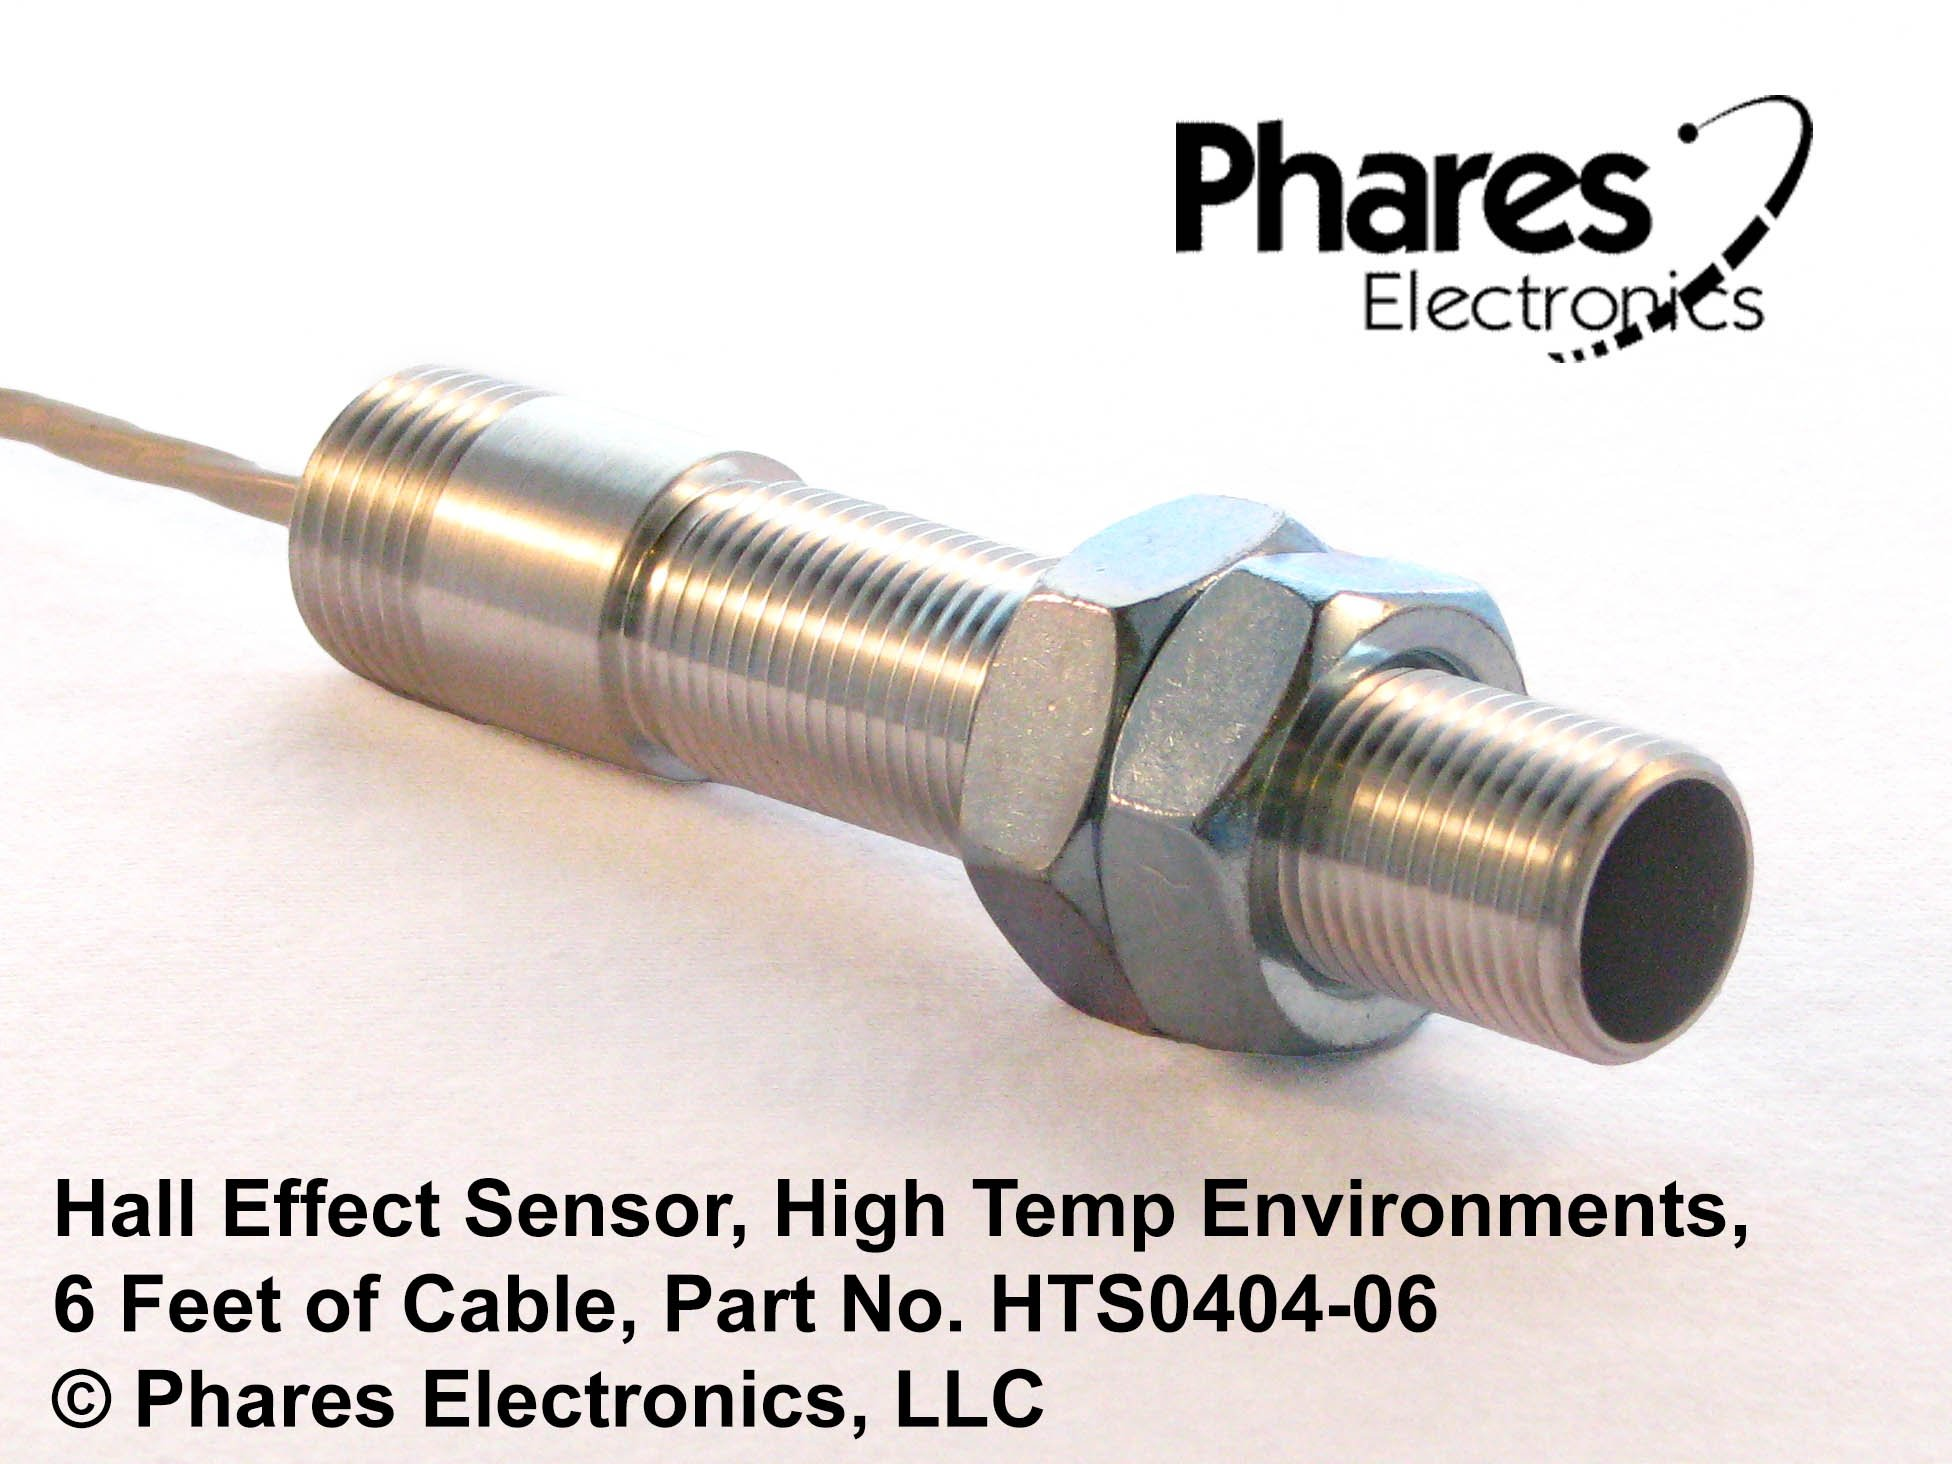 Phares Electronics Hall Effect Sensor for High Temperature Industrial Environments, 6' Cable